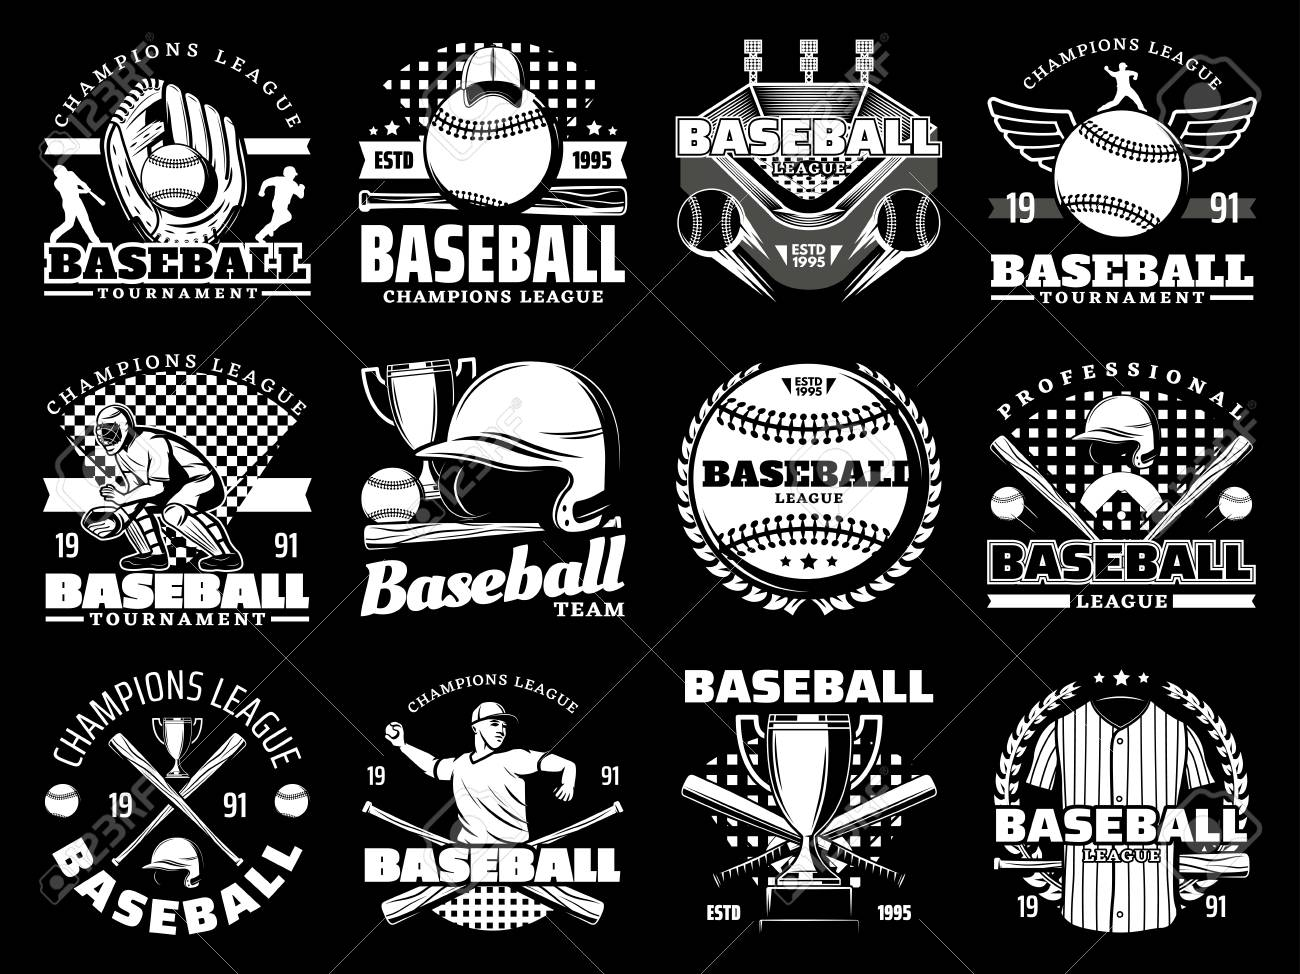 Baseball sport game monochrome icons, sporting items. Vector glove and ball, stadium and player, helmet and bat, trophy cup and uniform. Tournament or championship, cap and arena, laurel branches - 115570833